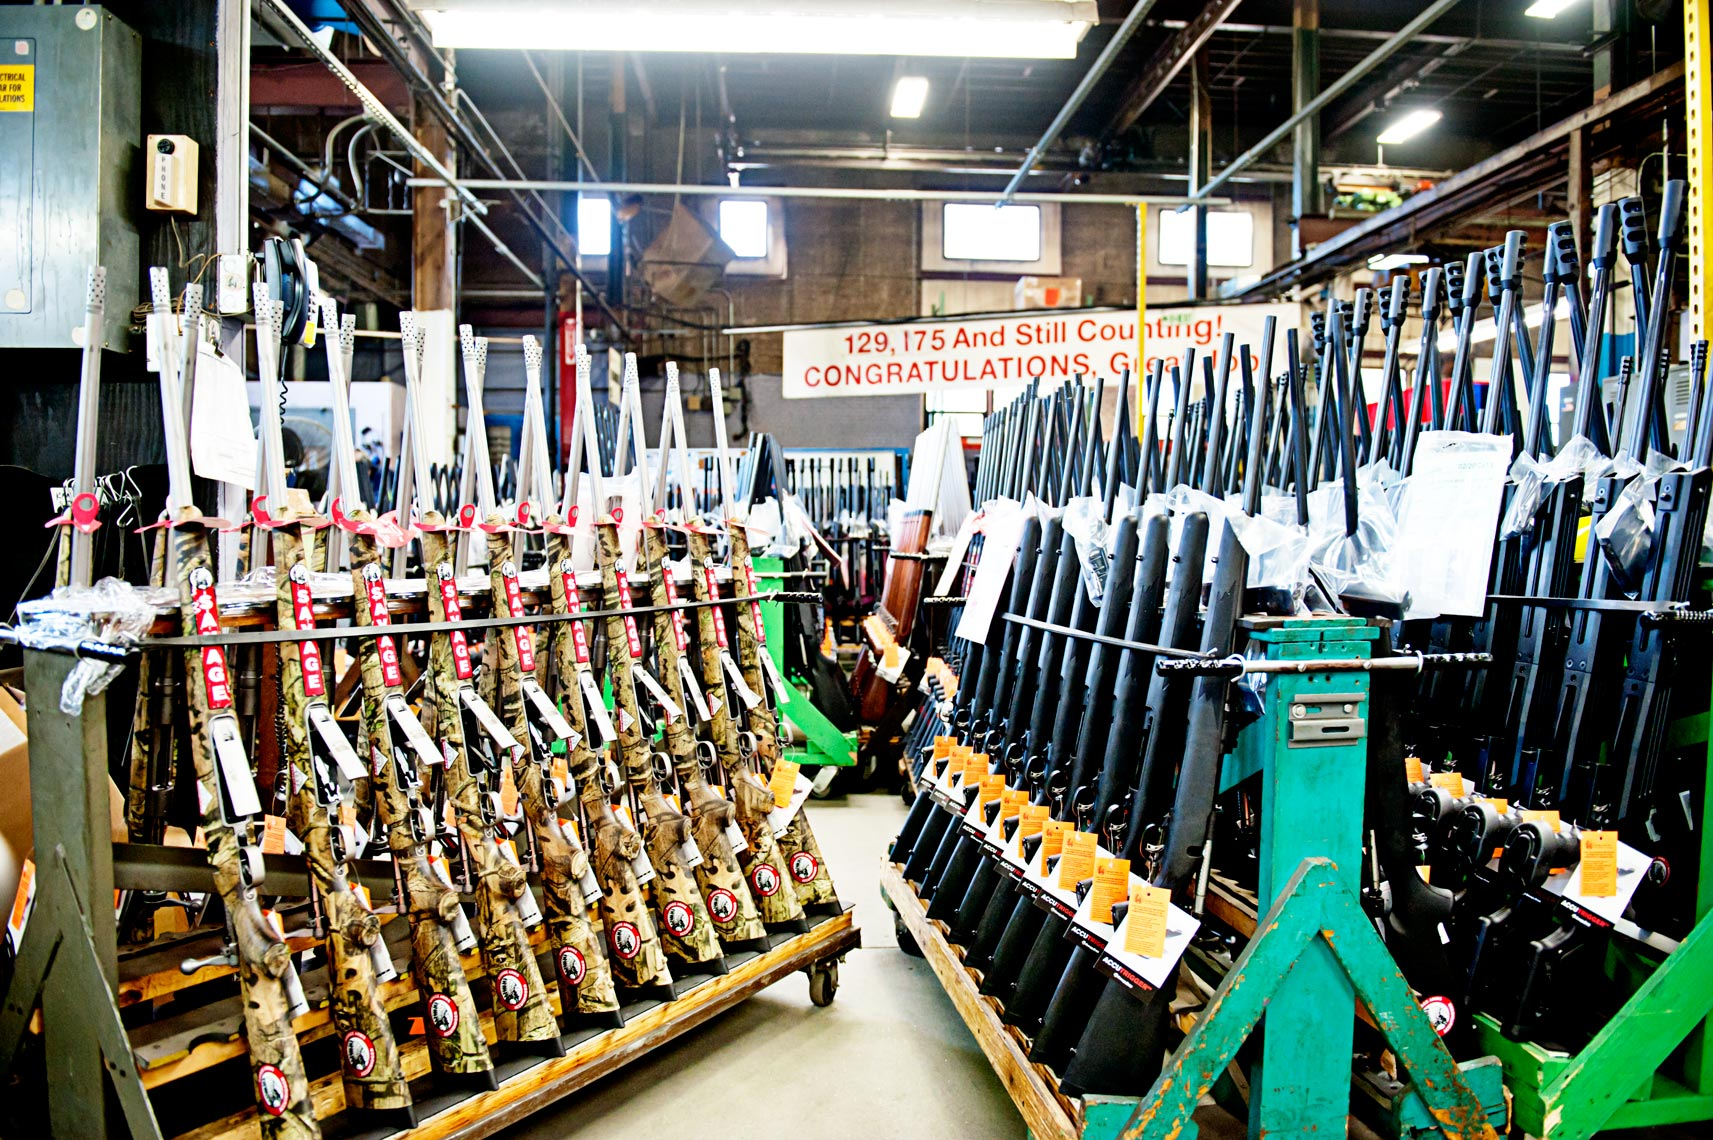 rifles and hand gun manufacturing in the USA